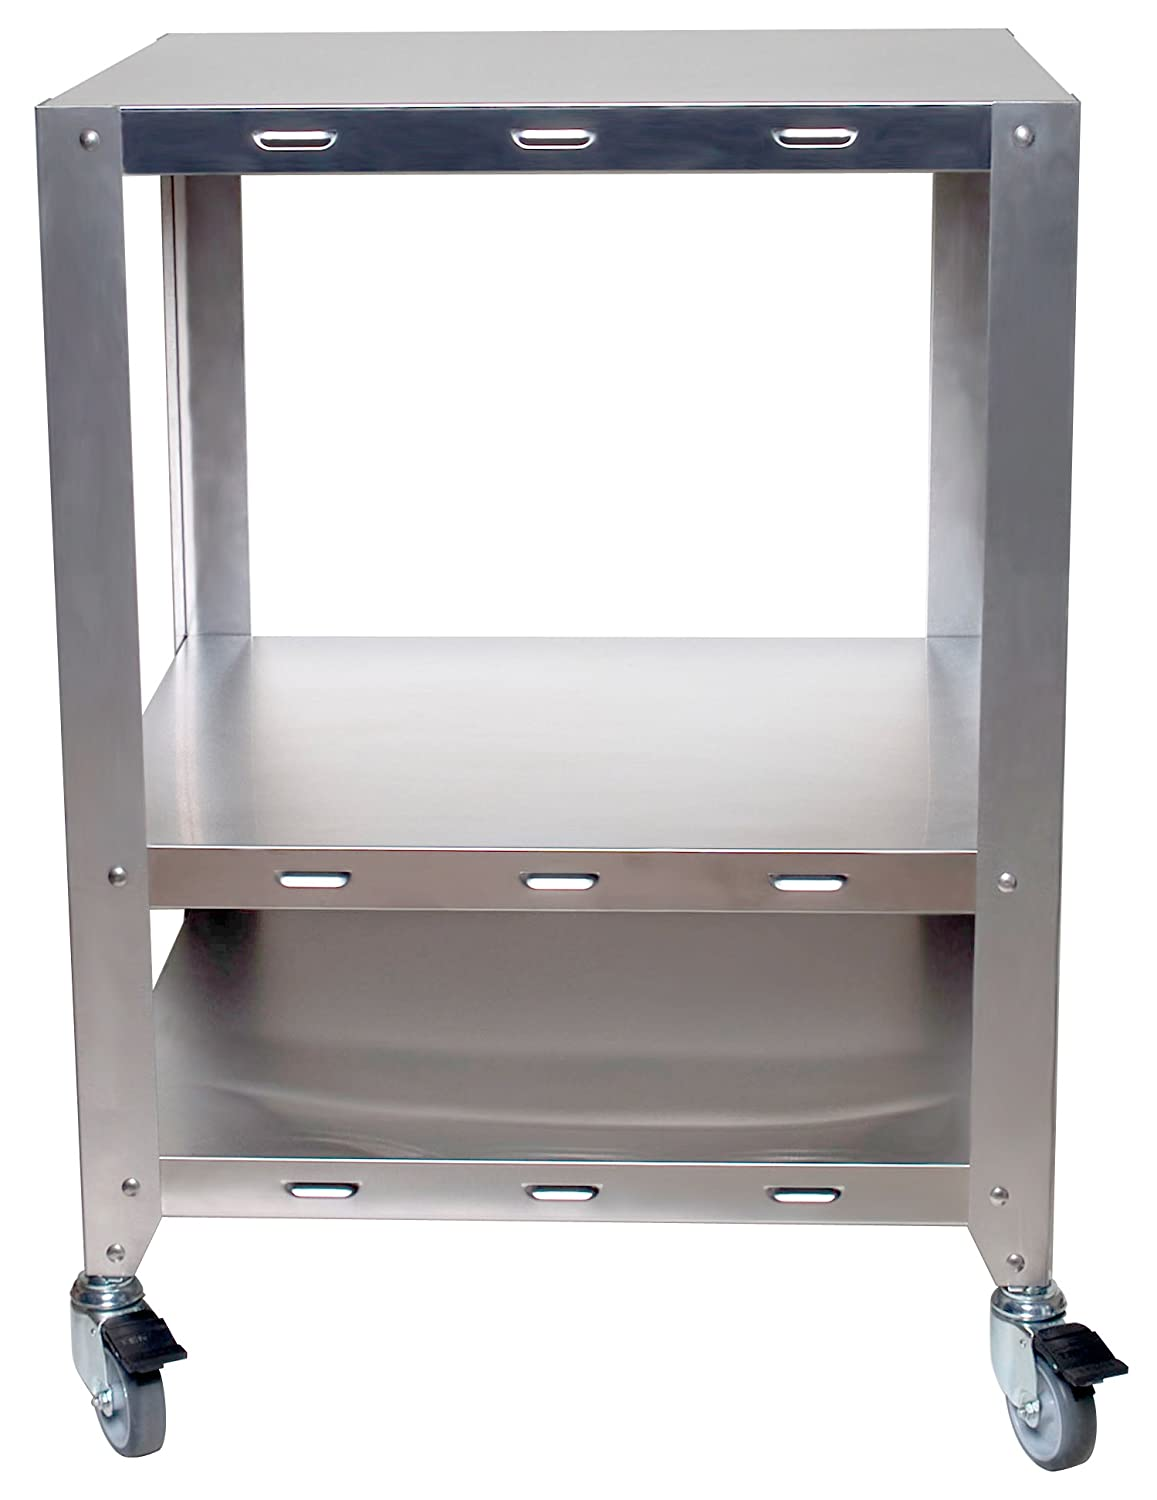 Cadco OV-HDS 2-Oven Heavy-Duty Stand with Wheels for Half or Quarter Size Cadco Ovens, Stainless